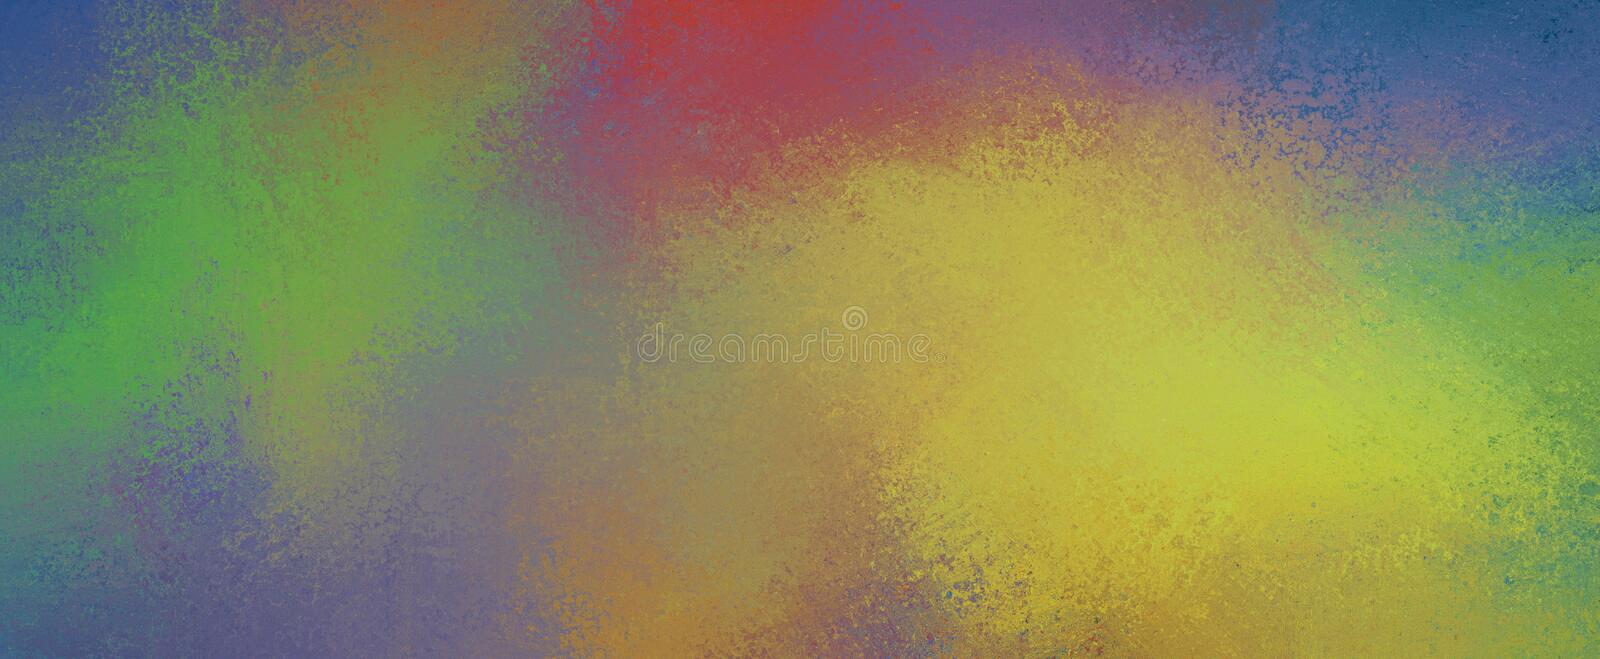 Abstract colorful background with color splashes of green red yellow orange and blue with texture and grunge stock illustration